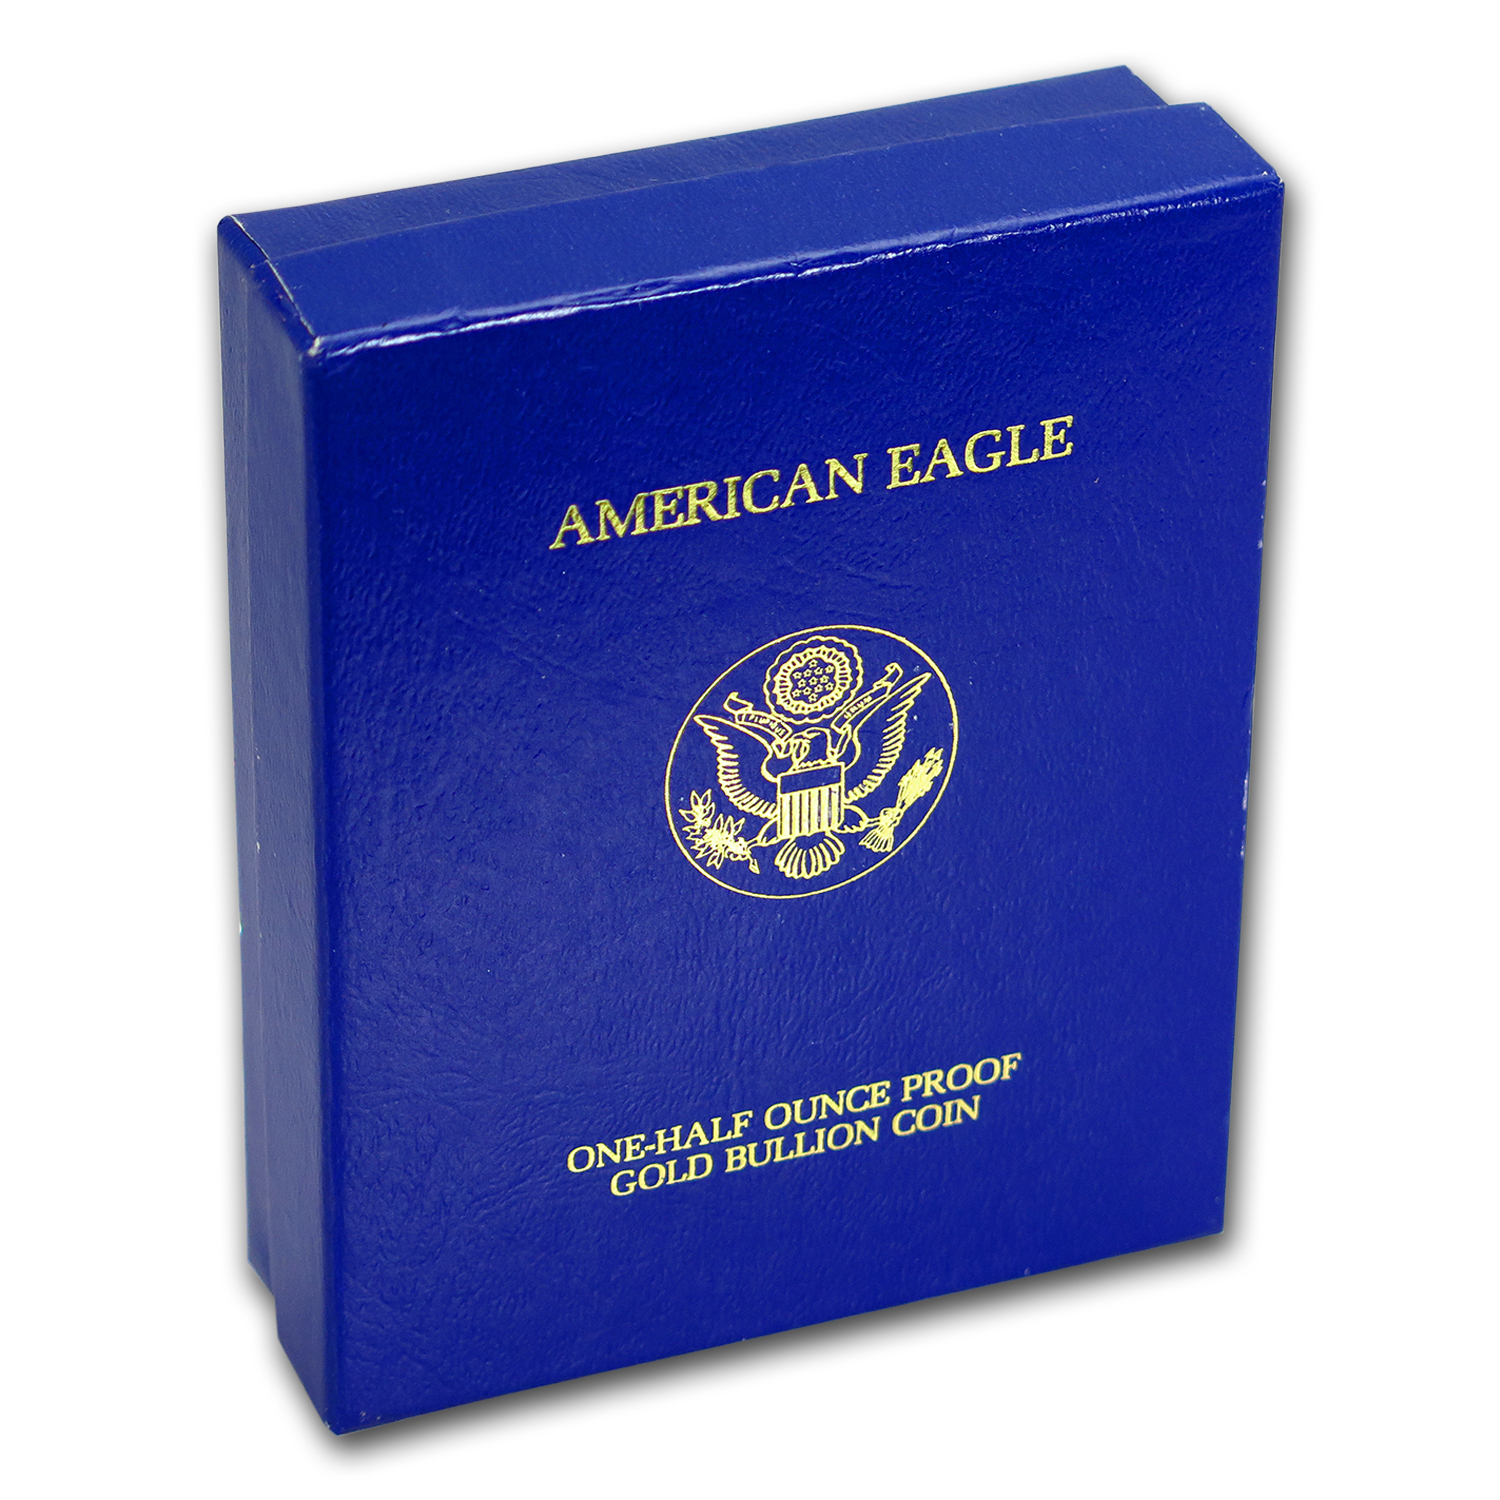 OGP Box & COA - 1991 1/2 oz Proof Gold American Eagle